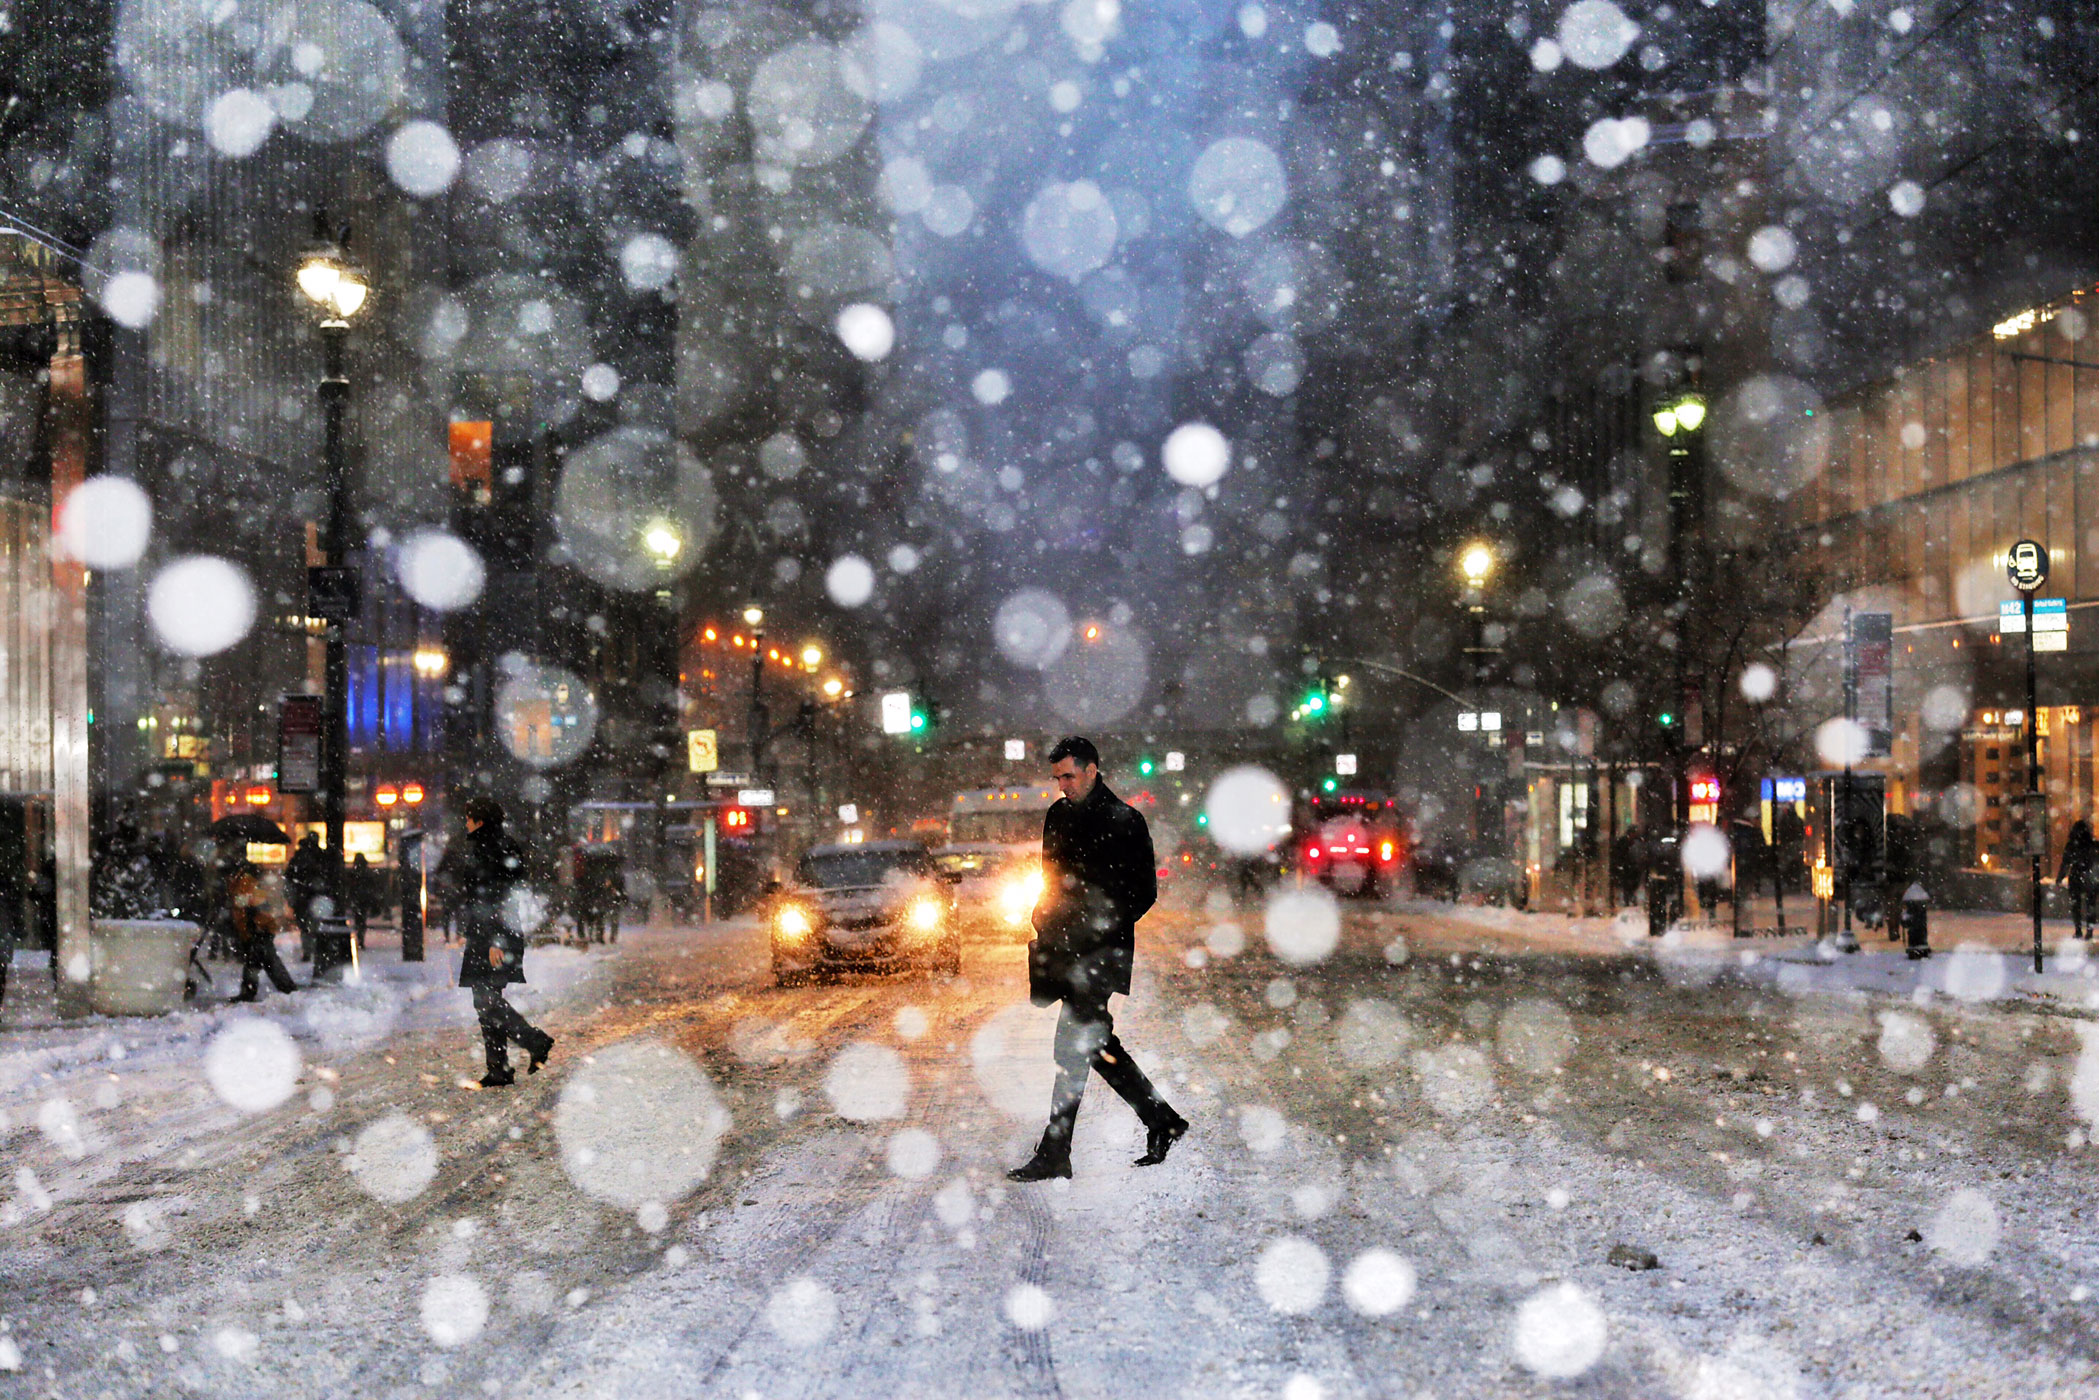 A man crosses the street in New York City during a snow storm in New York City on Jan. 26, 2015.